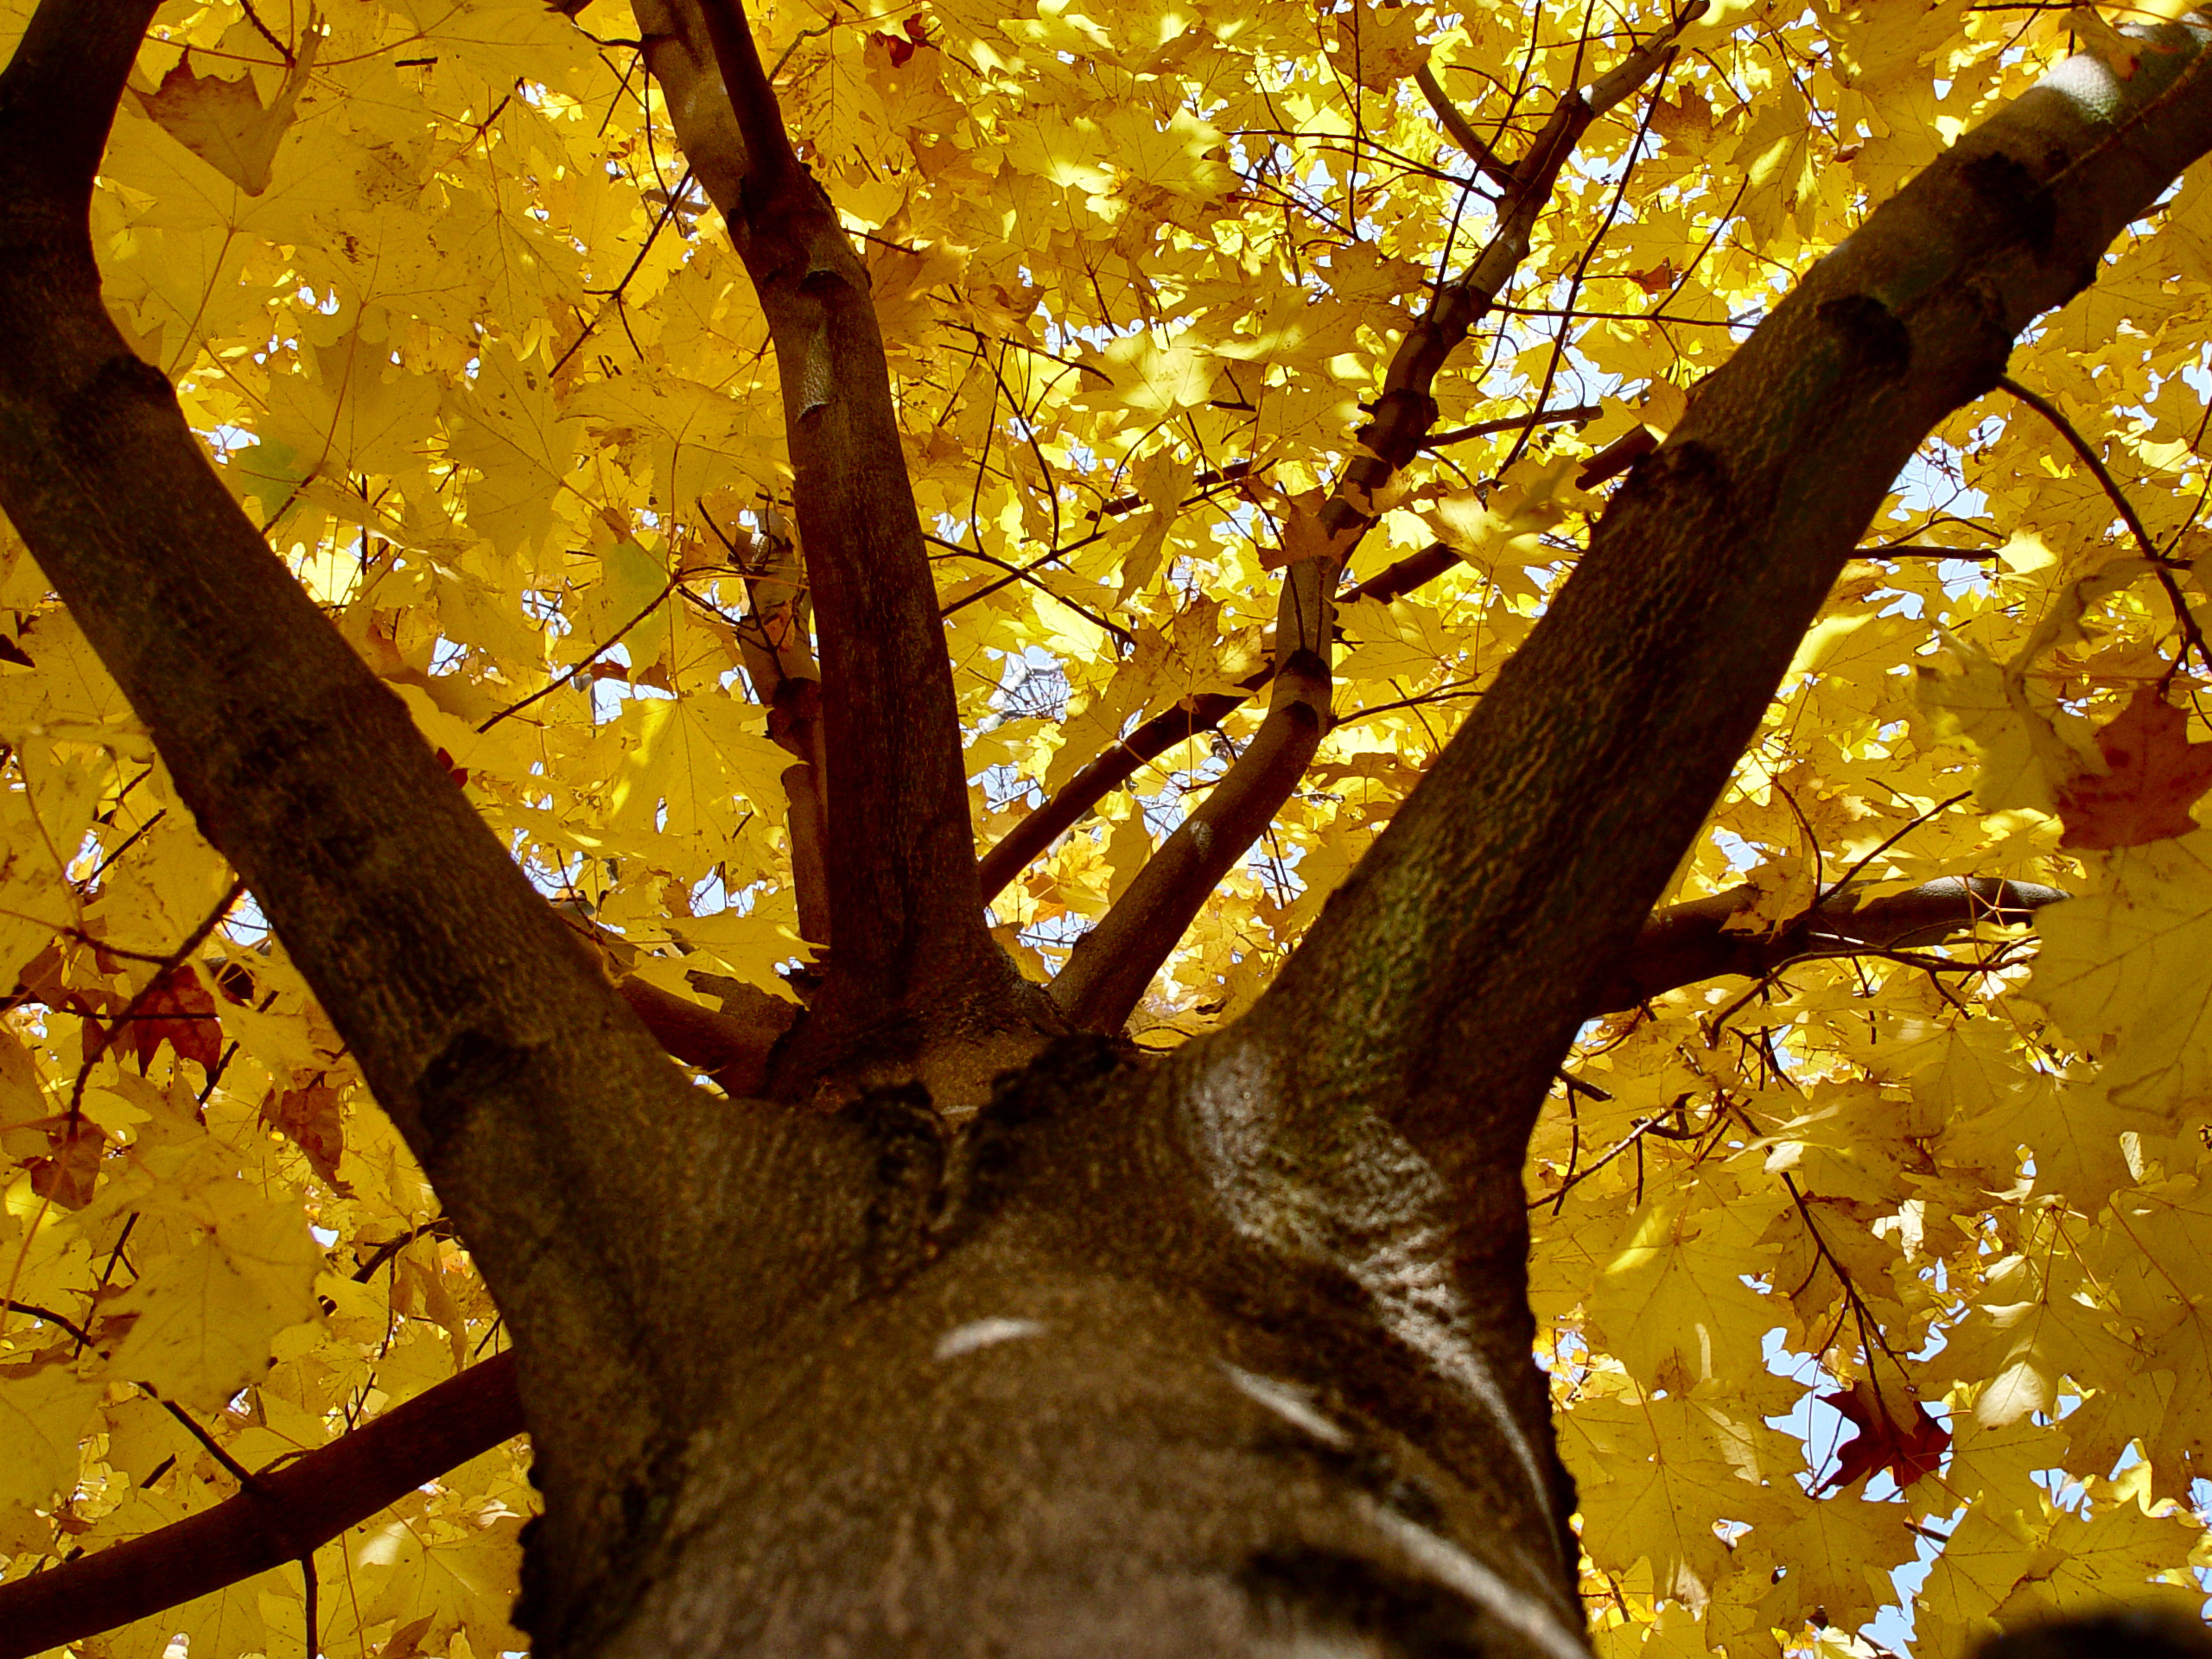 Looking up into a Norway Maple Acer platanoides bursting with autumn colors